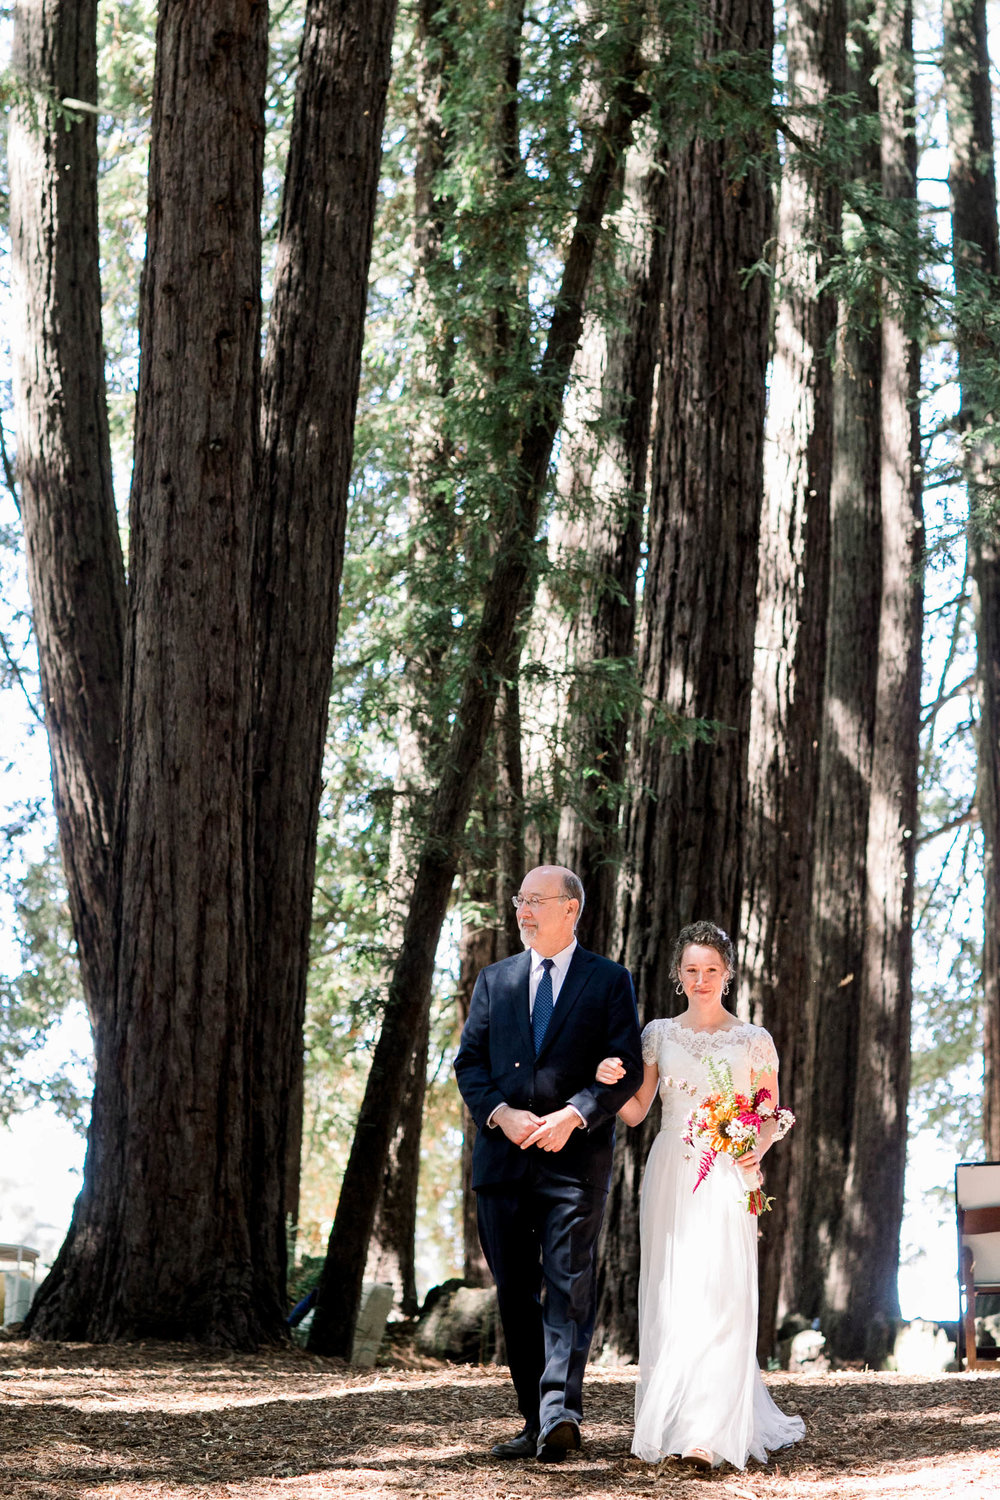 092918_J+S_Mt Madonna Redwoods Wedding_Buena Lane Photography_029.jpg